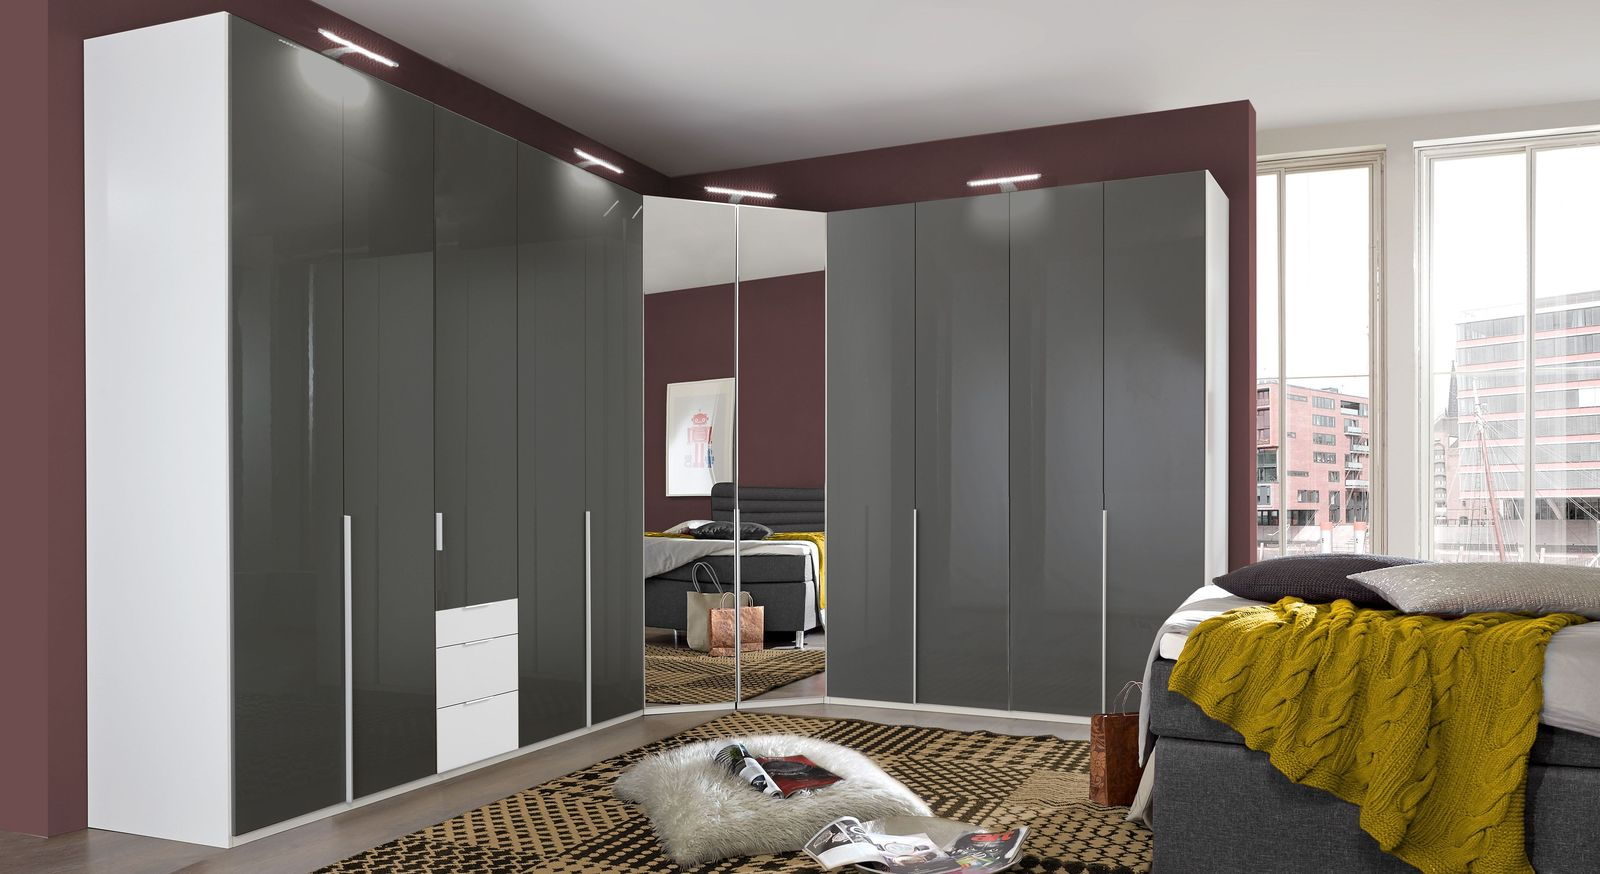 eck kleiderschrank zweifarbig mit glas spiegelt ren. Black Bedroom Furniture Sets. Home Design Ideas